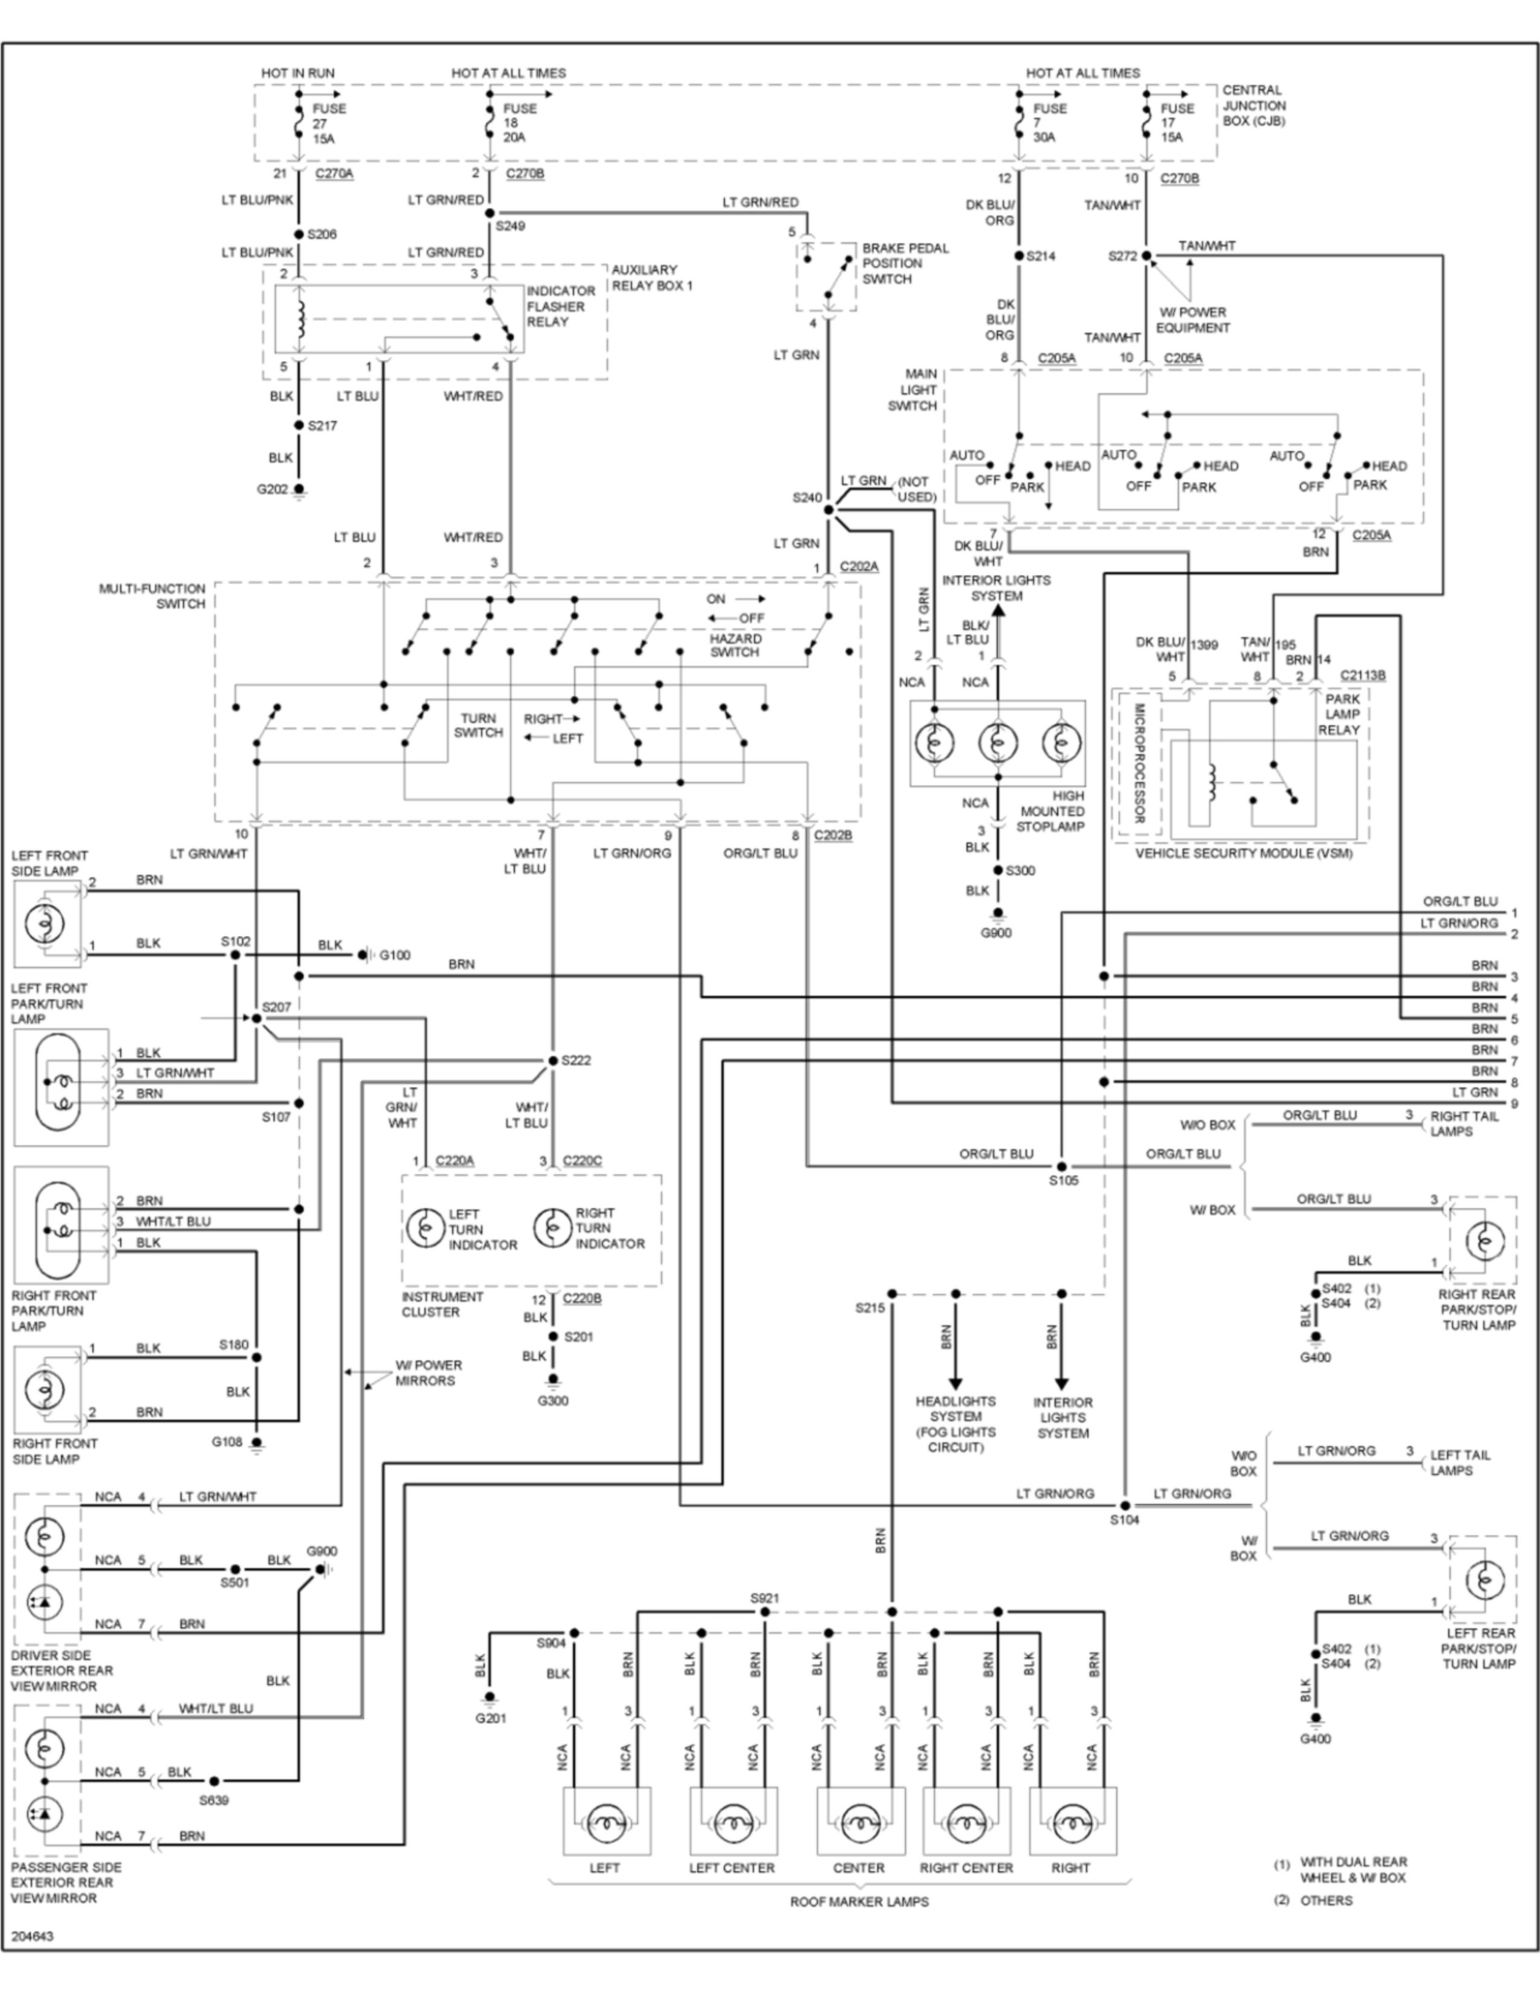 80 2006_f250_lights_1_2b023c2fa1ddf644c887c9adee595ace23e9e91f ford f550 pto wiring diagram dolgular com 2000 ford f550 pto wiring diagram at bakdesigns.co